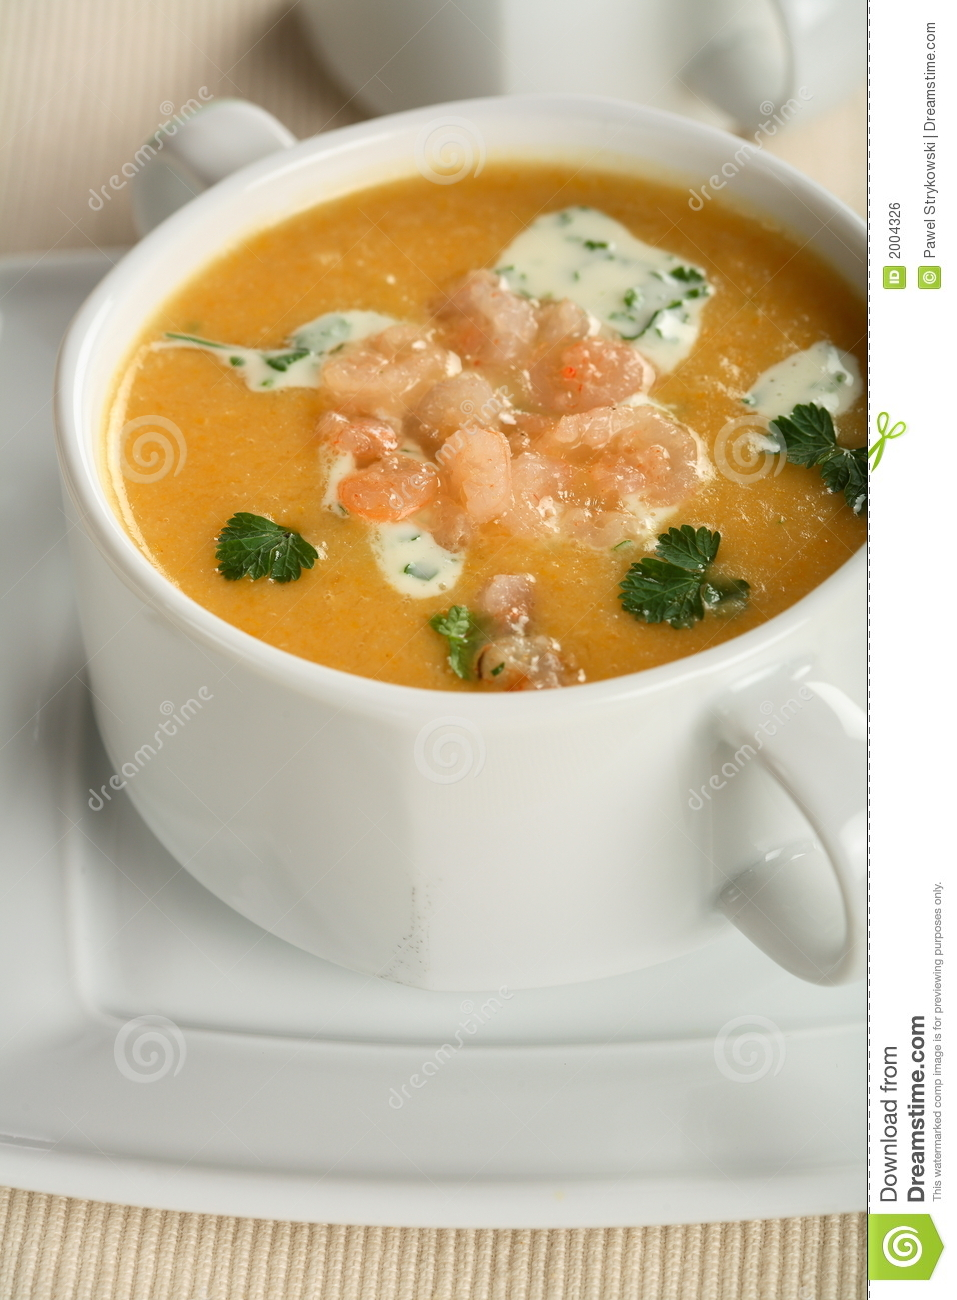 Creamy fish soup royalty free stock image image 2004326 for Creamy fish soup recipe